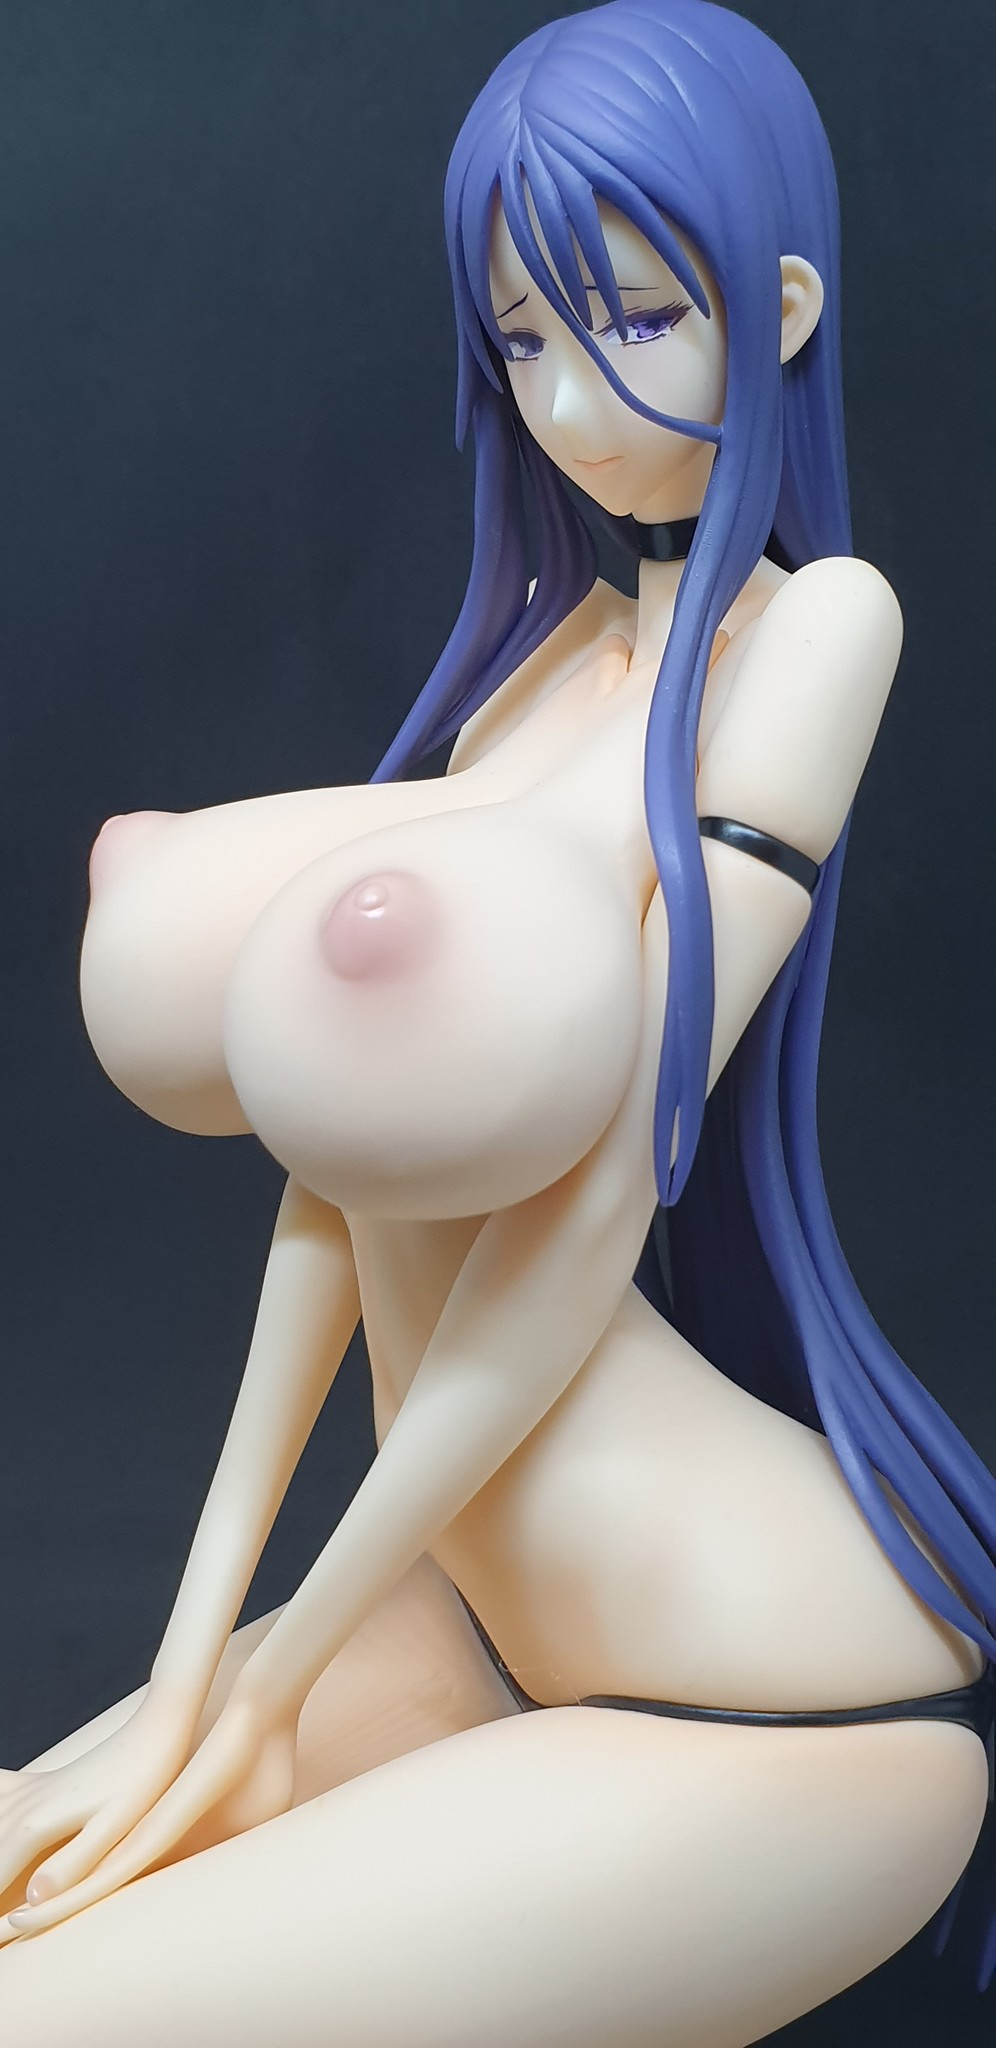 https://static.myfigurecollection.net/upload/pictures/2021/08/25/2829913.jpeg